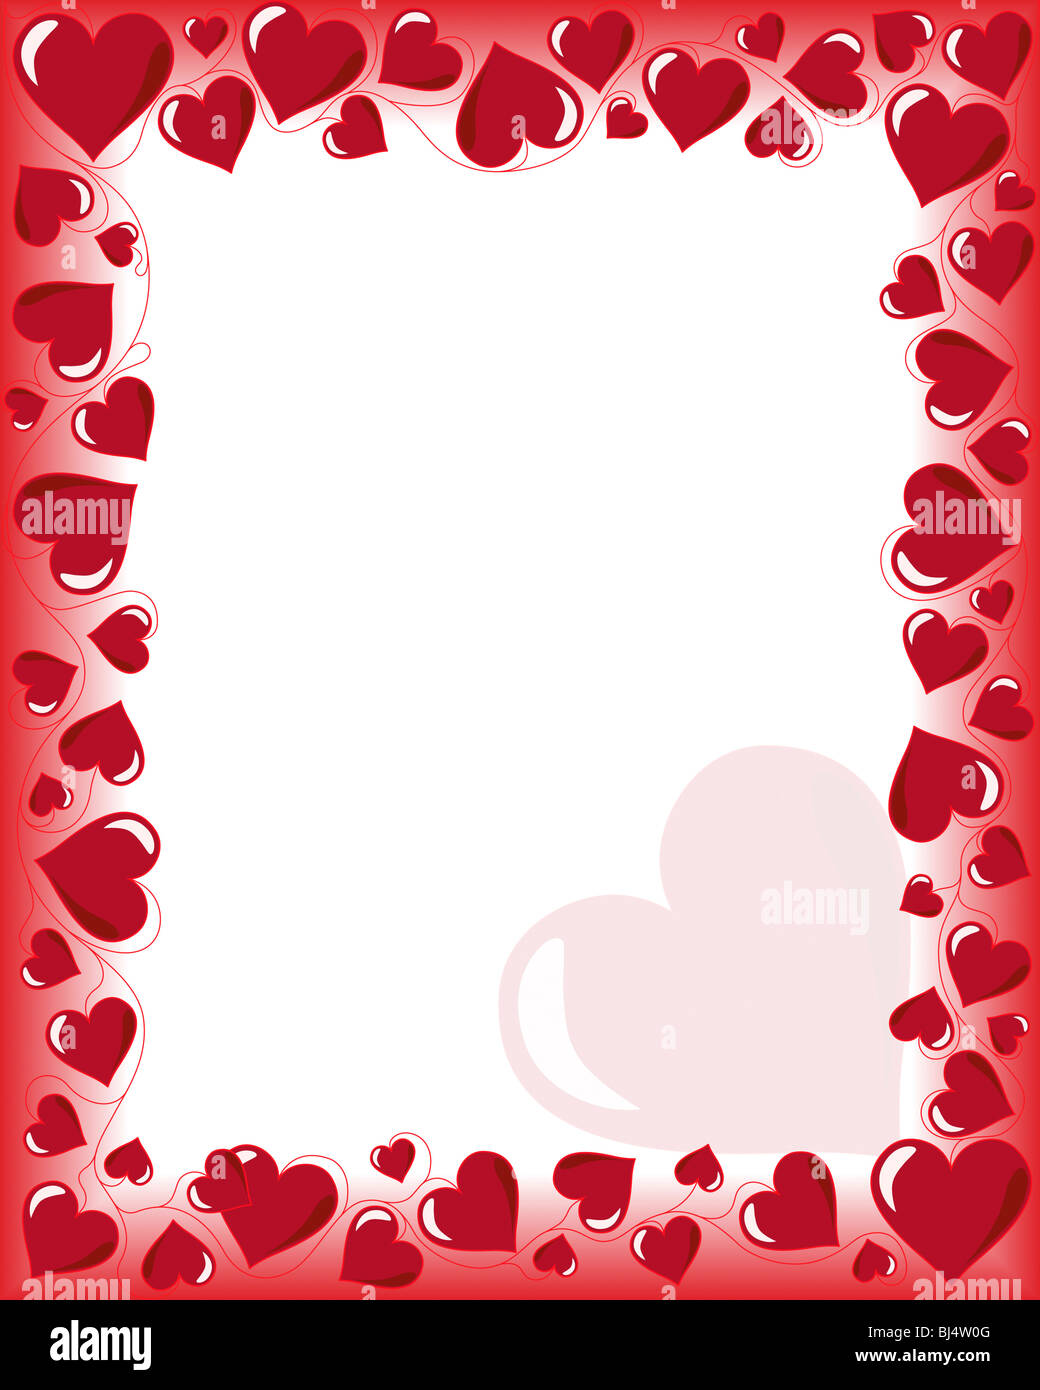 stock photo valentines day background frame with heart shaped ornament vector illustration with white copyspace